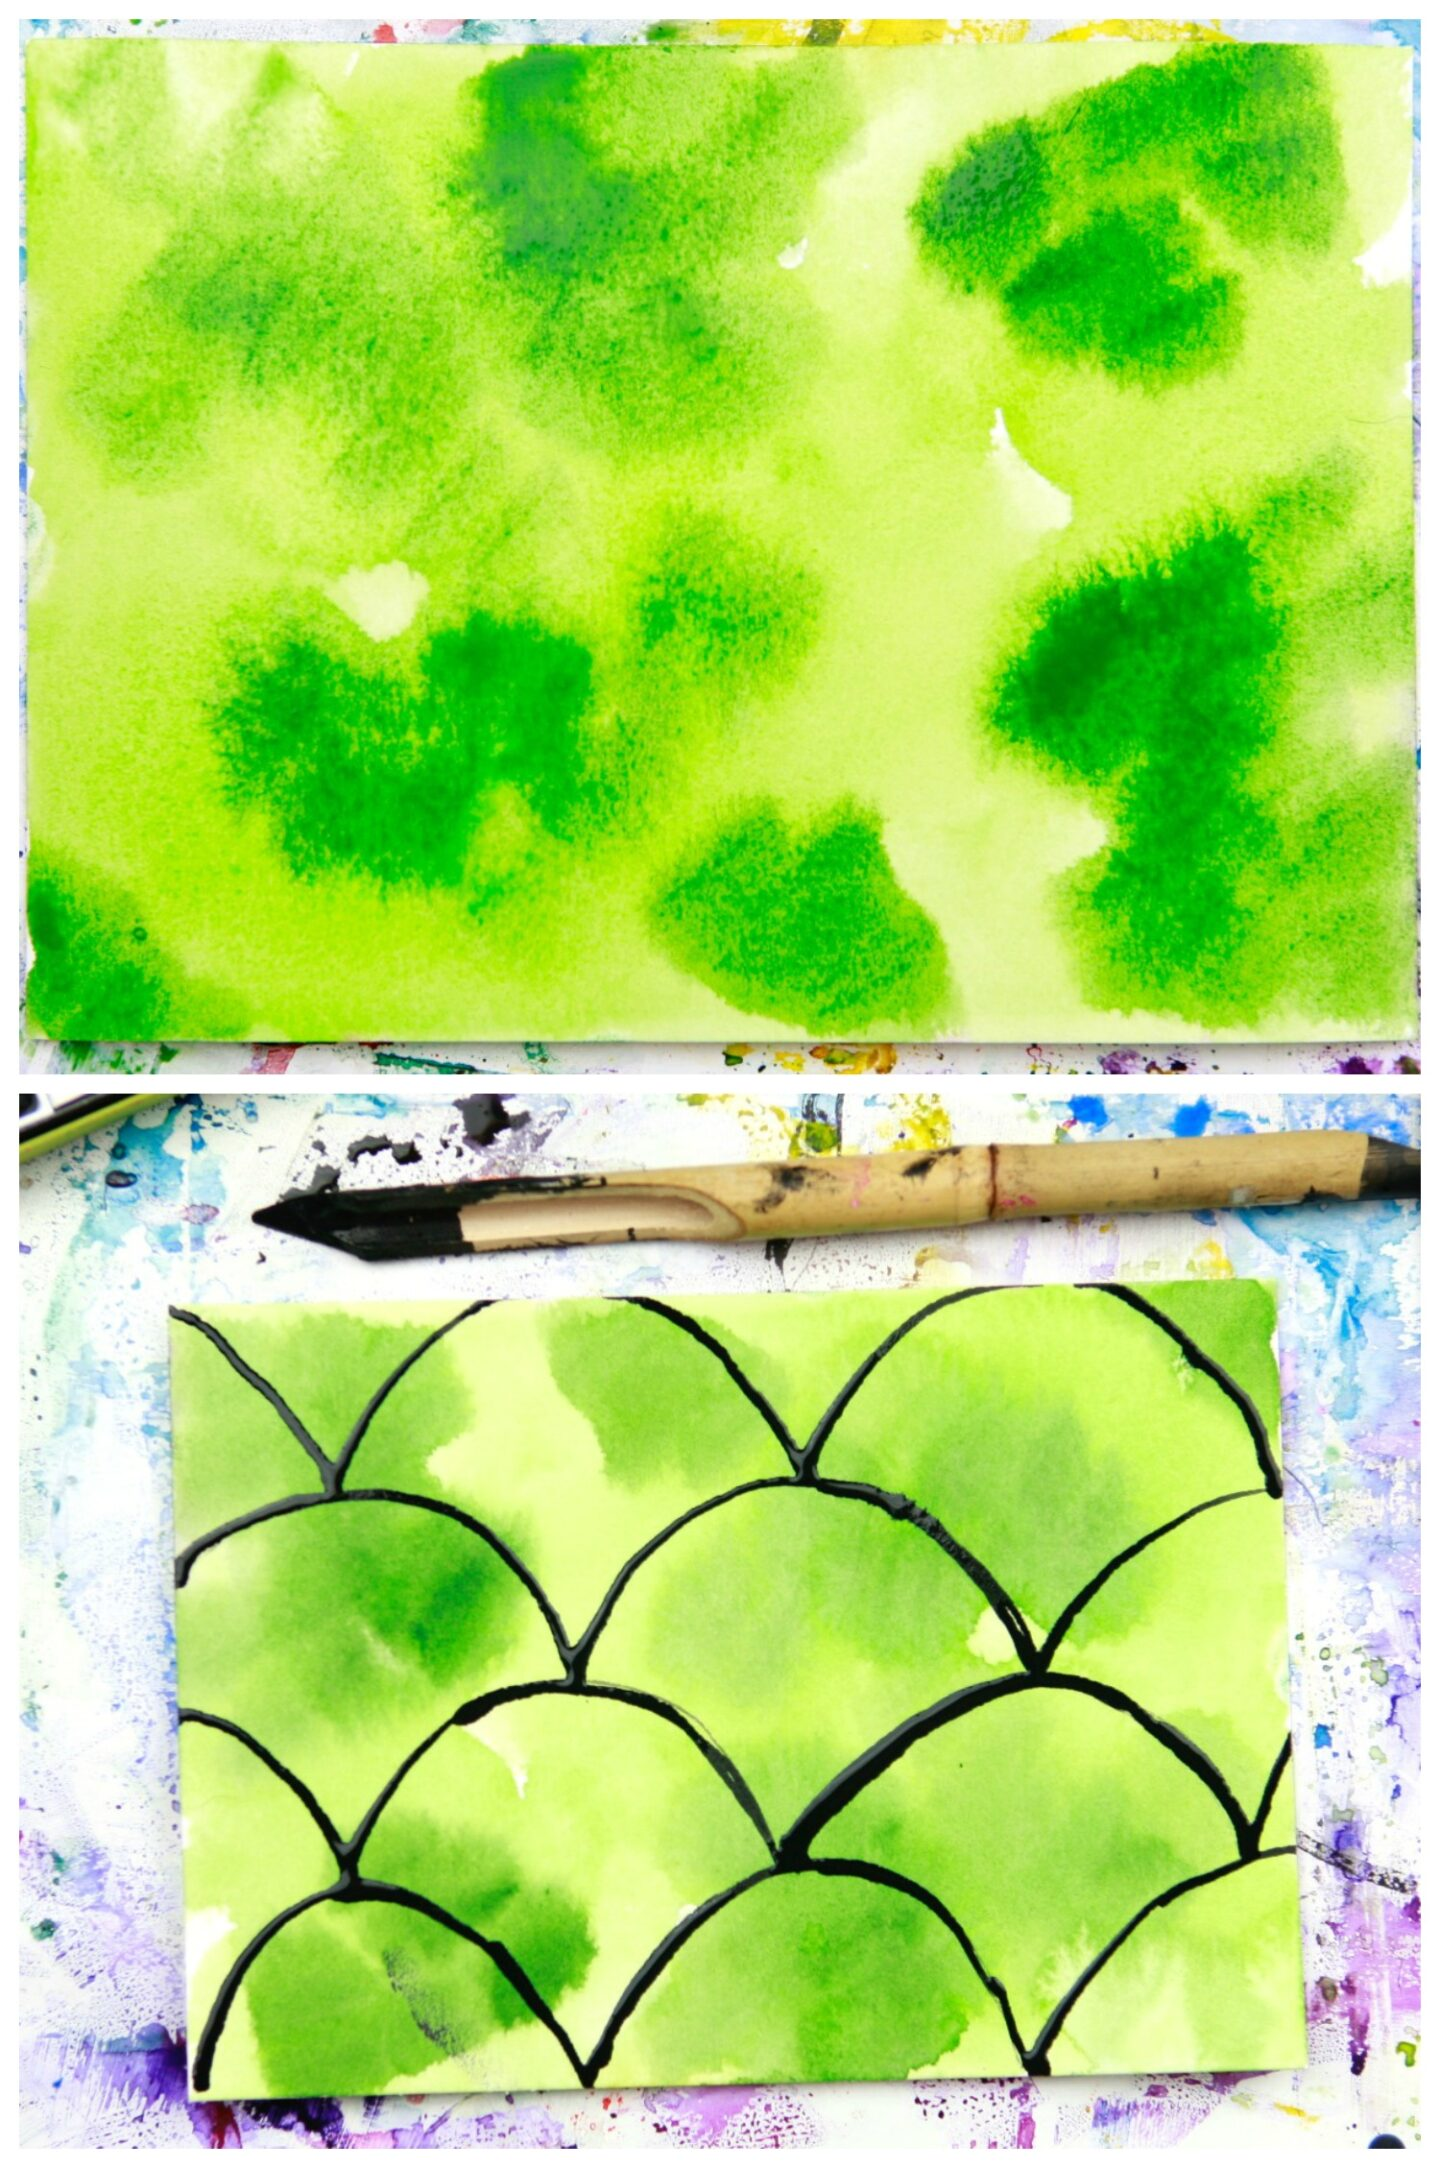 wet green watercolor background with ink design drawn over